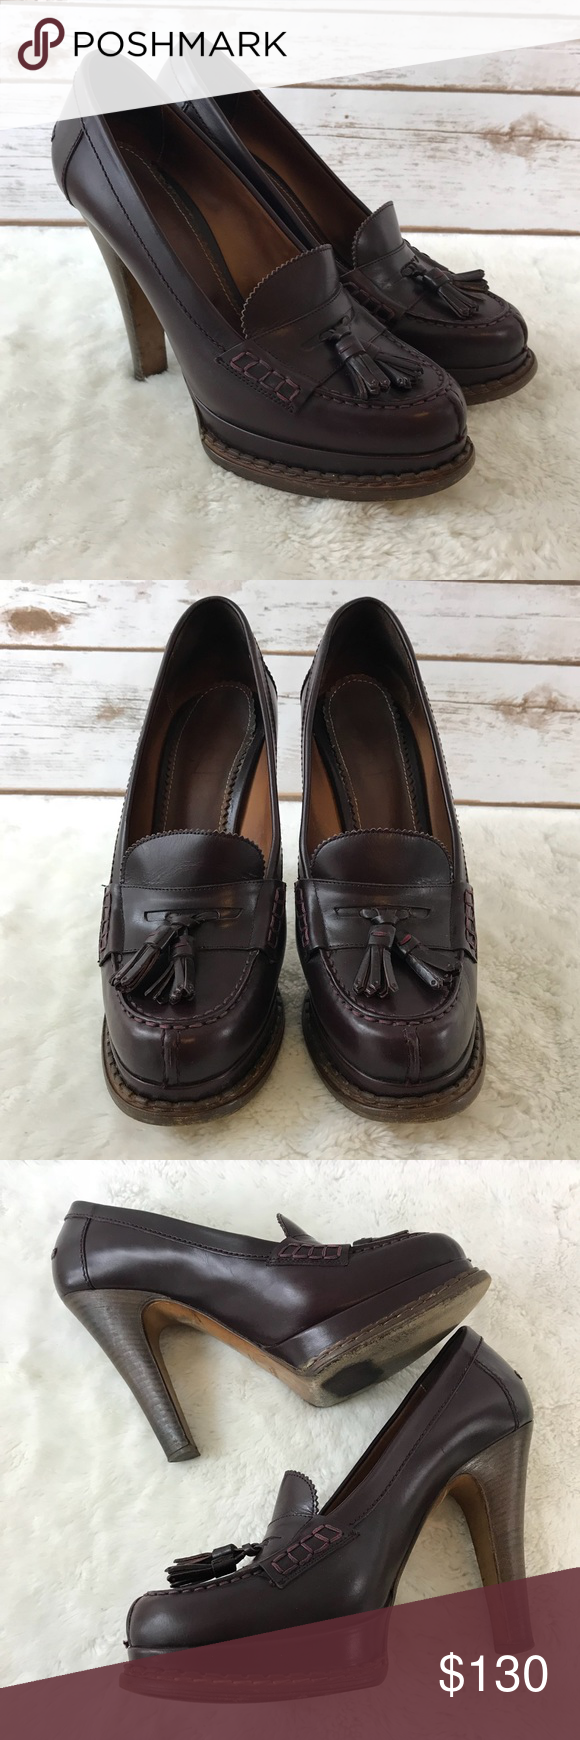 36bd26f6335e Yves Saint Laurent YSL Oxford Heels (Bin  SE9) Yves Saint Laurent YSL Oxford